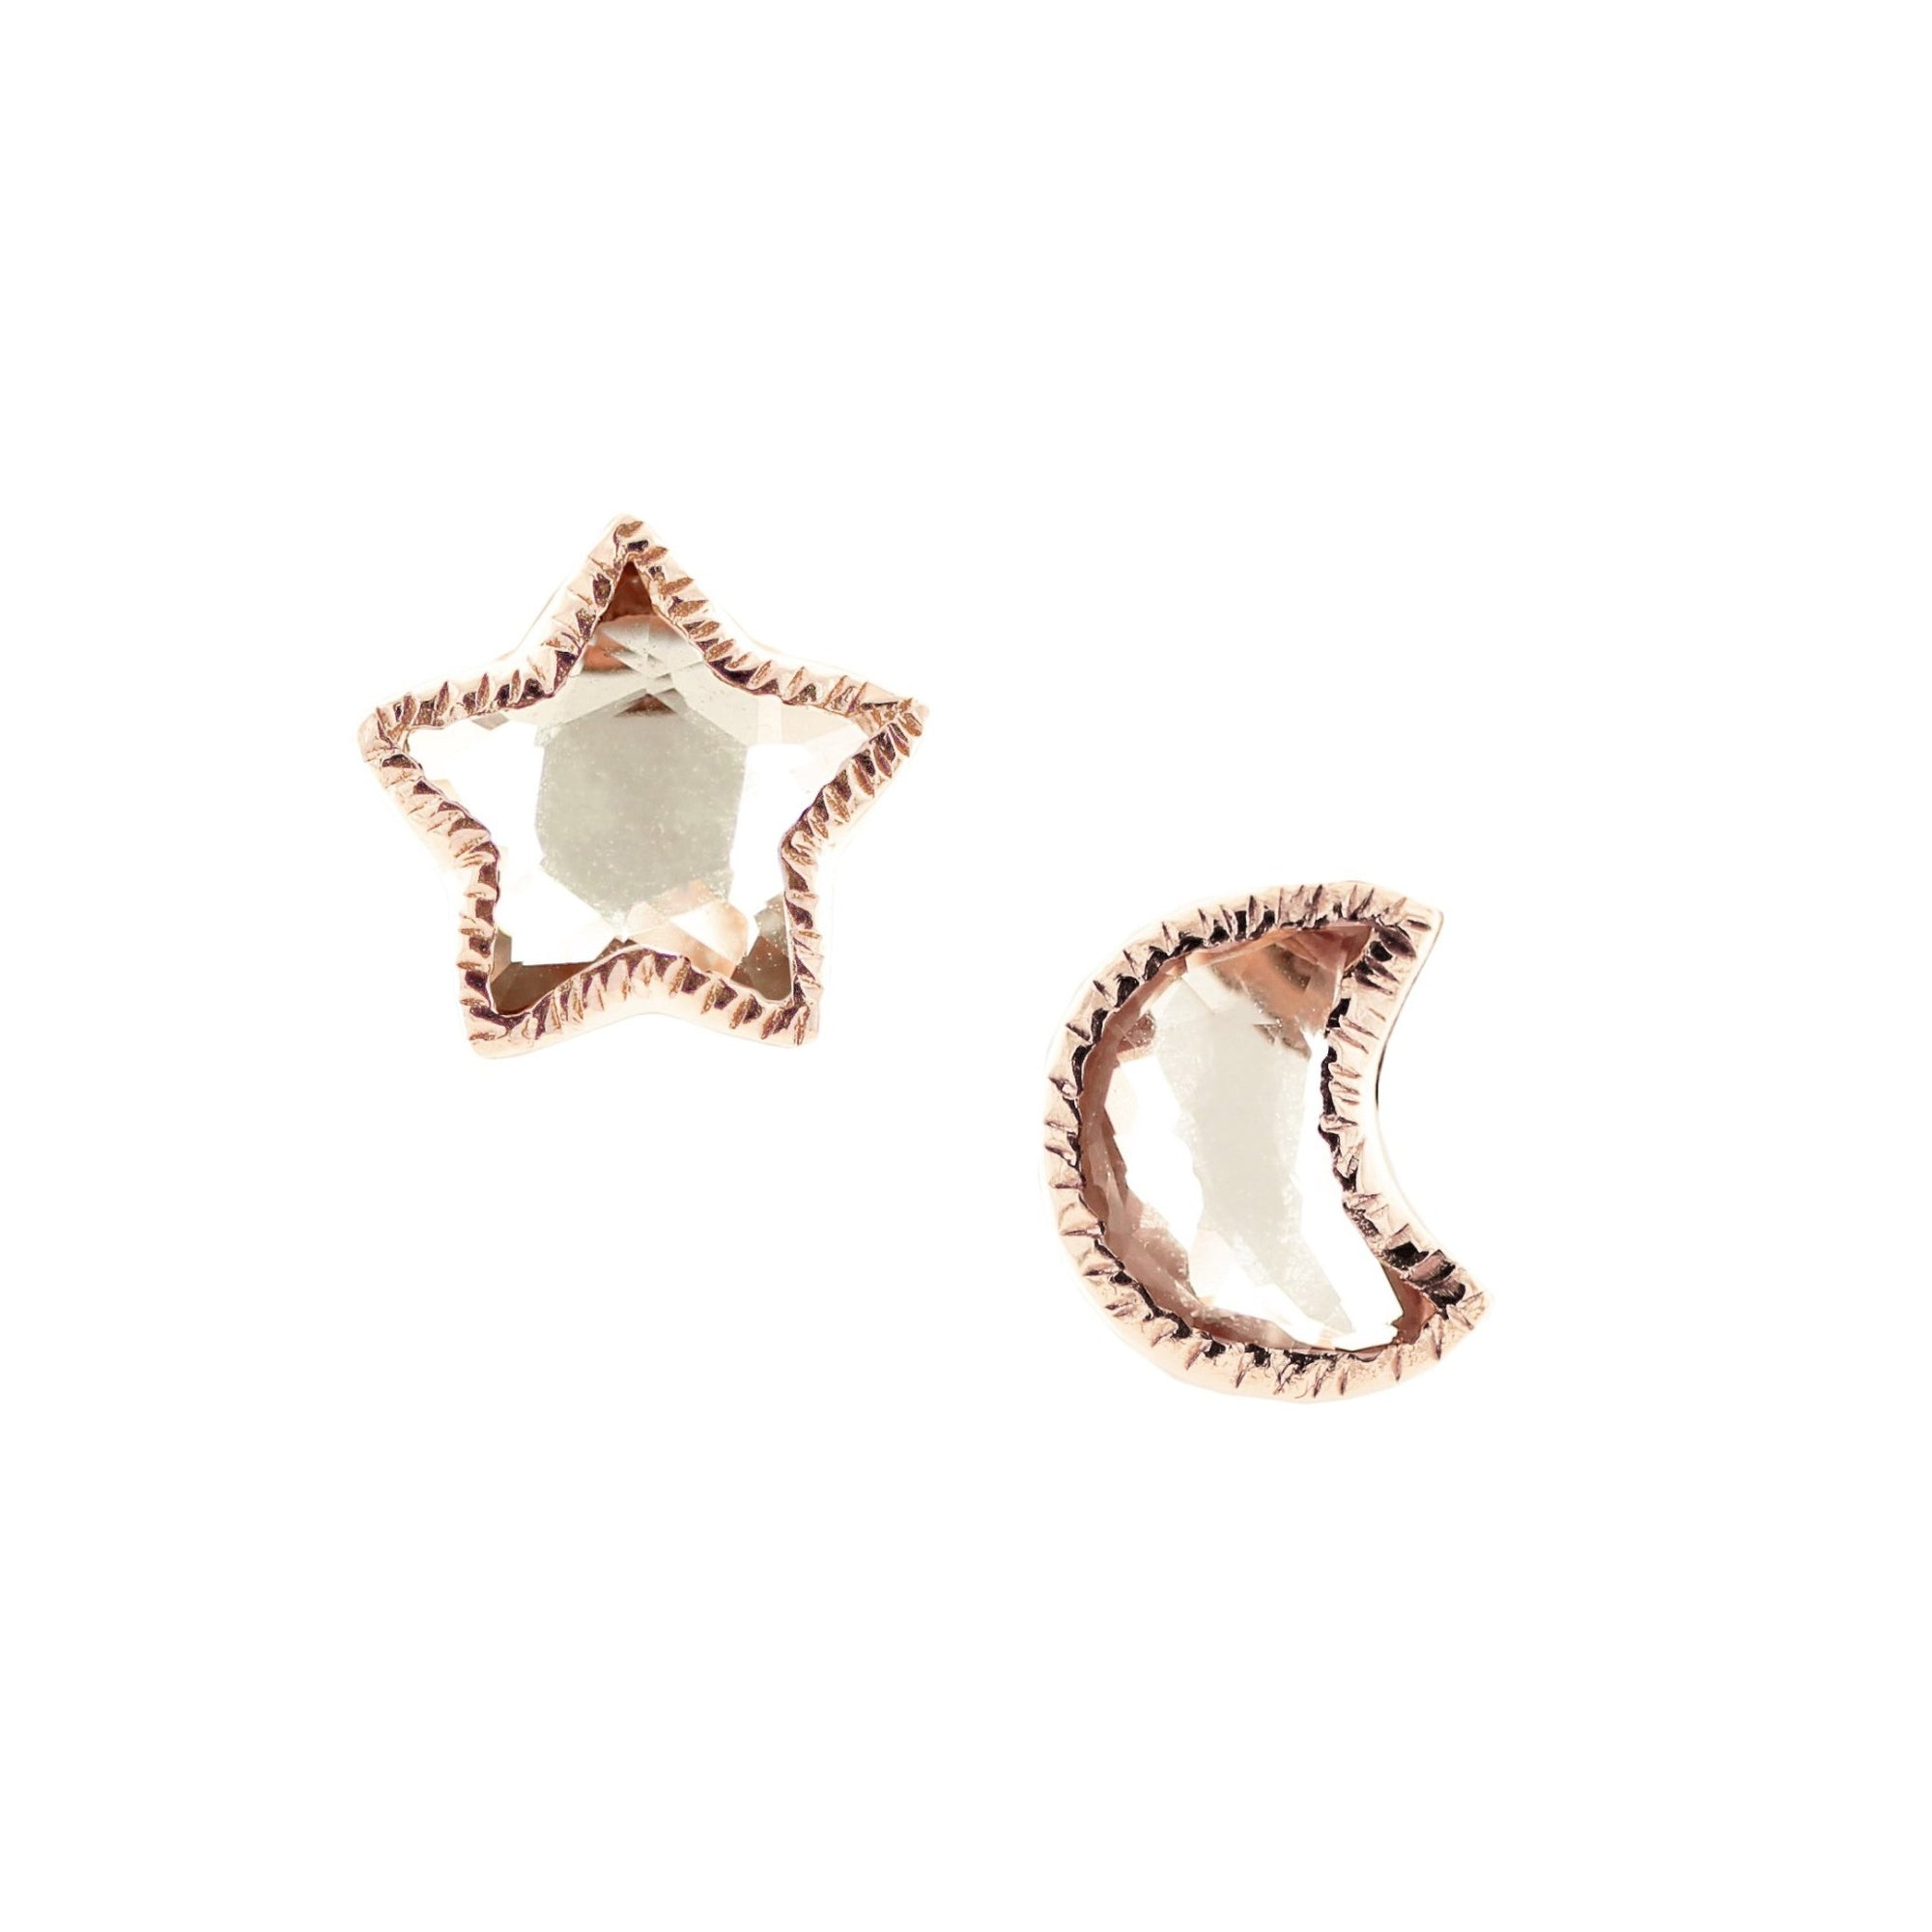 Shoot For The Stars Studs - White Topaz & Rose Gold - SO PRETTY CARA COTTER